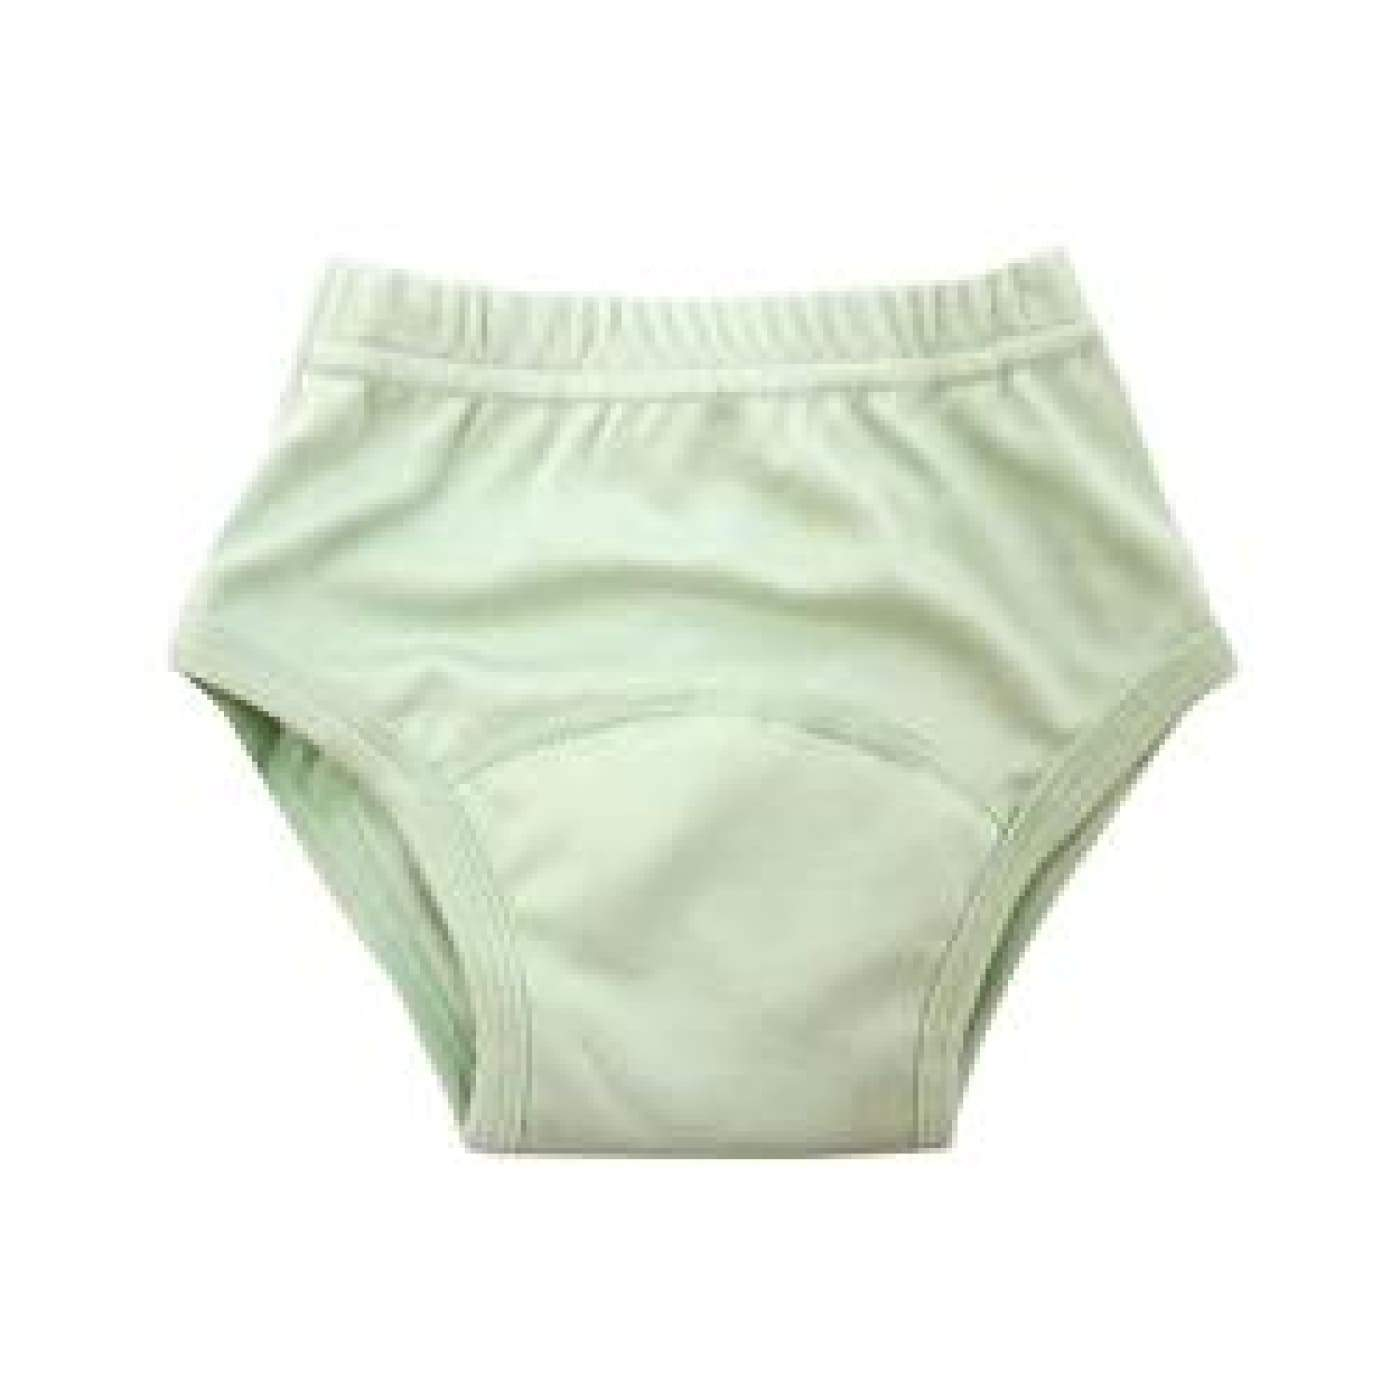 Pea Pods Training Pants Medium - Pea Green - BATHTIME & CHANGING - NAPPIES/WIPES/ACC ECO RANGE